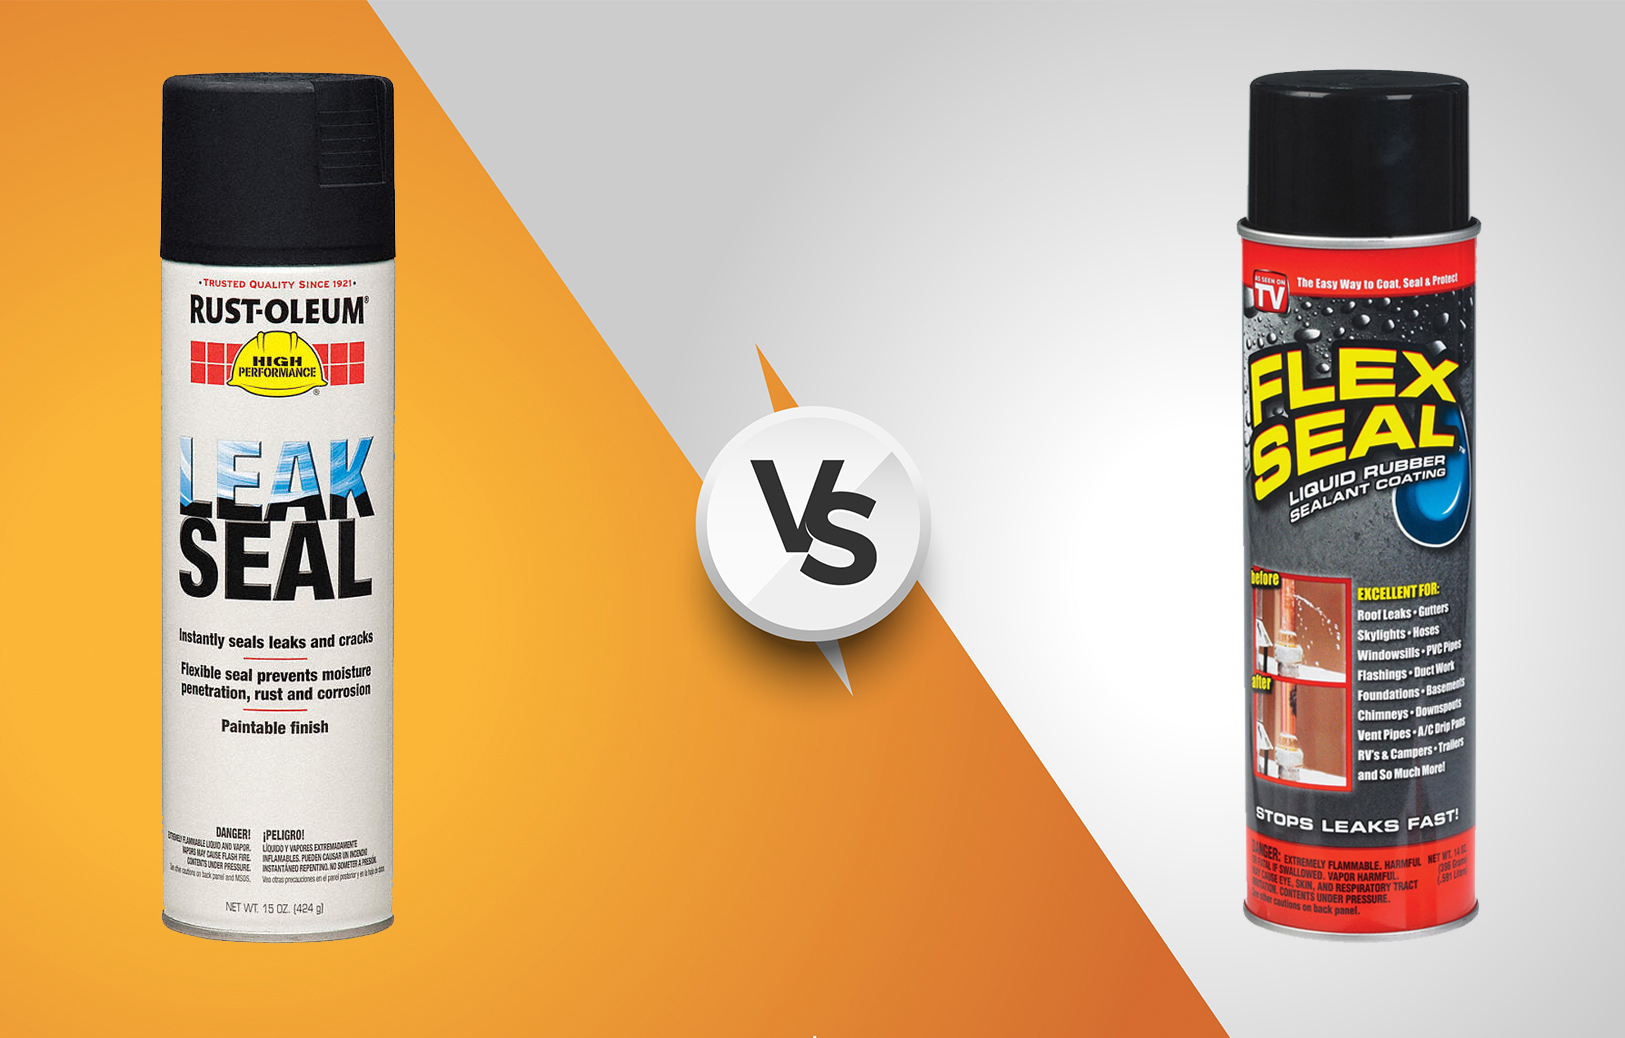 rust oleum leak seal vs flex seal which one is better outdoor fact. Black Bedroom Furniture Sets. Home Design Ideas